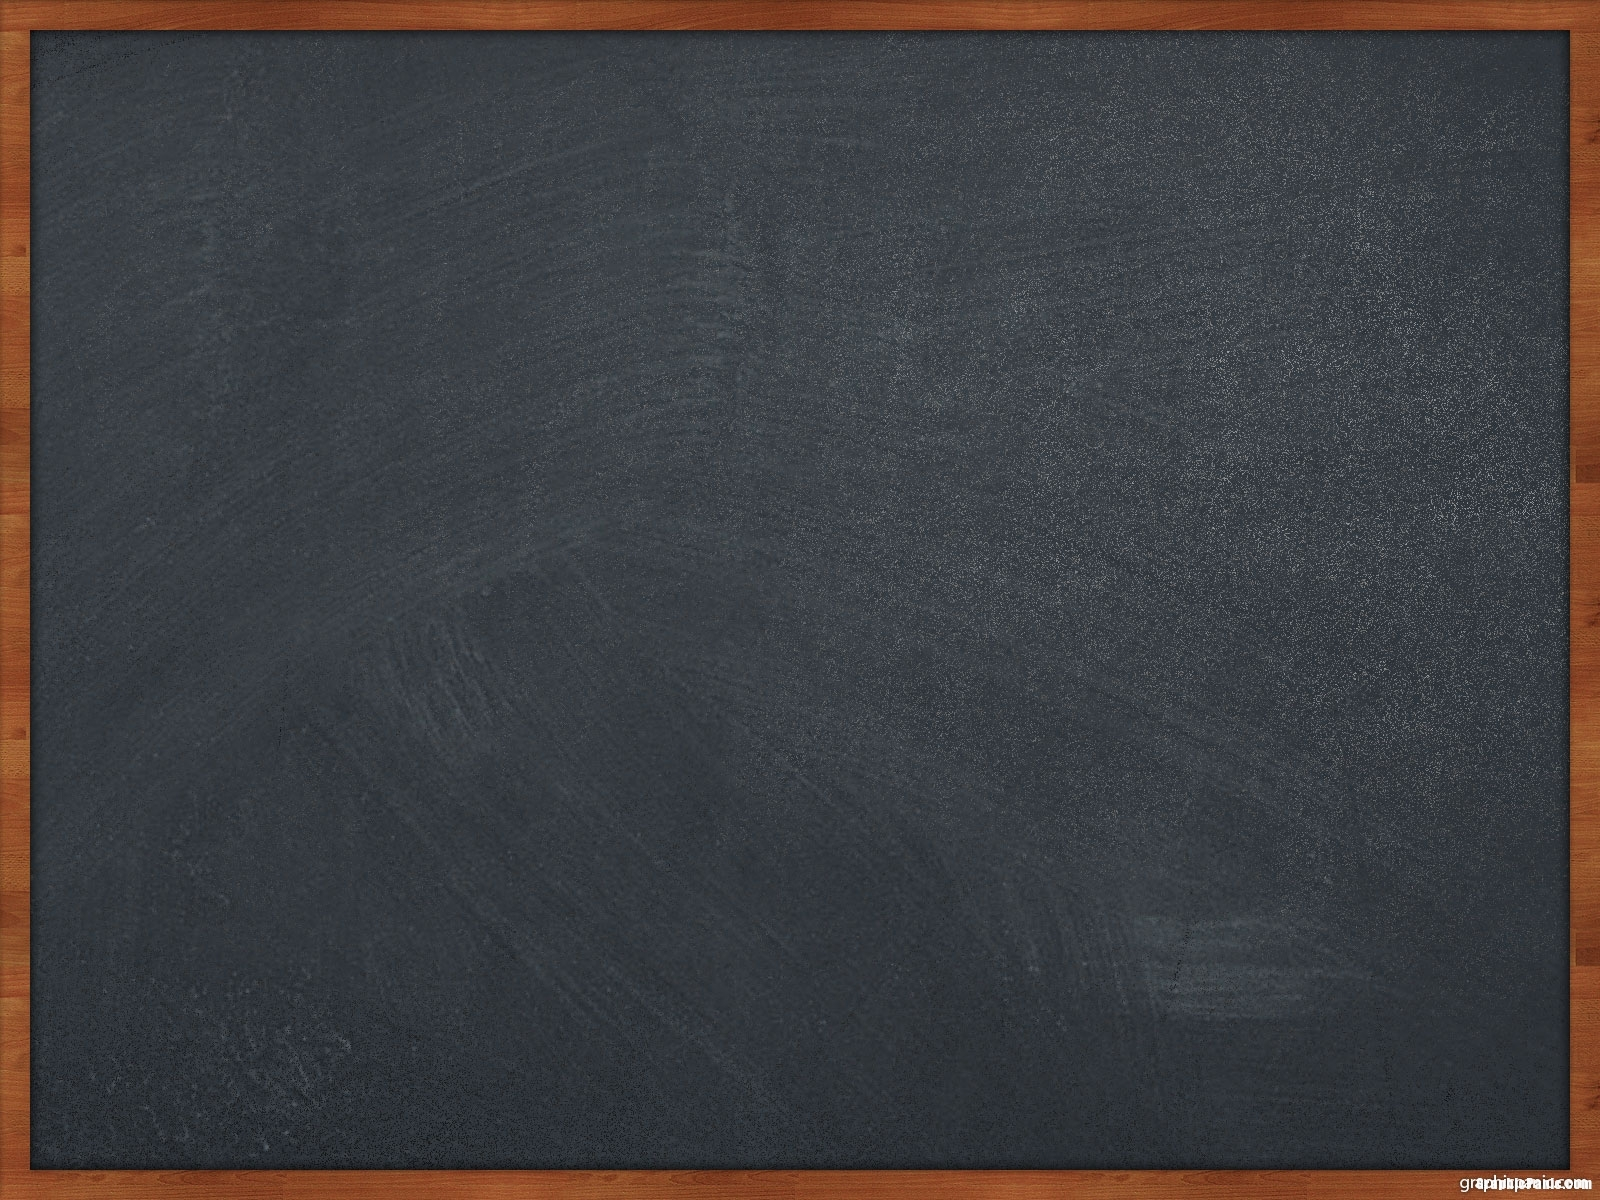 Black Chalkboard Background With Frame Graphicpanic Com